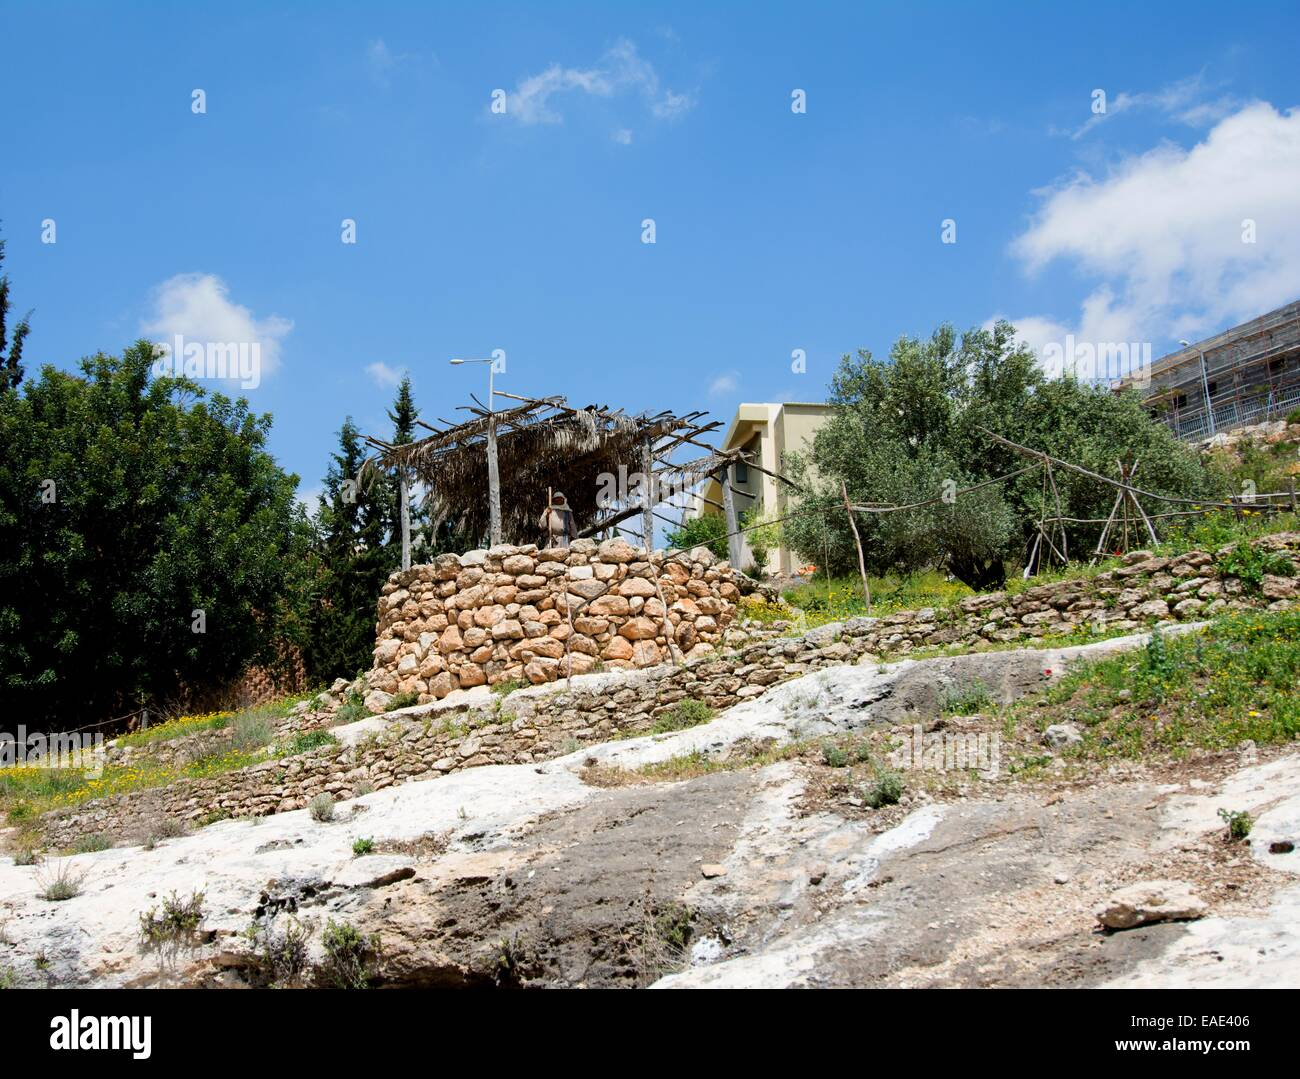 Open air museum depicting village life at the time of Jesus showing the sentry at village entrance, Nazareth village, - Stock Image